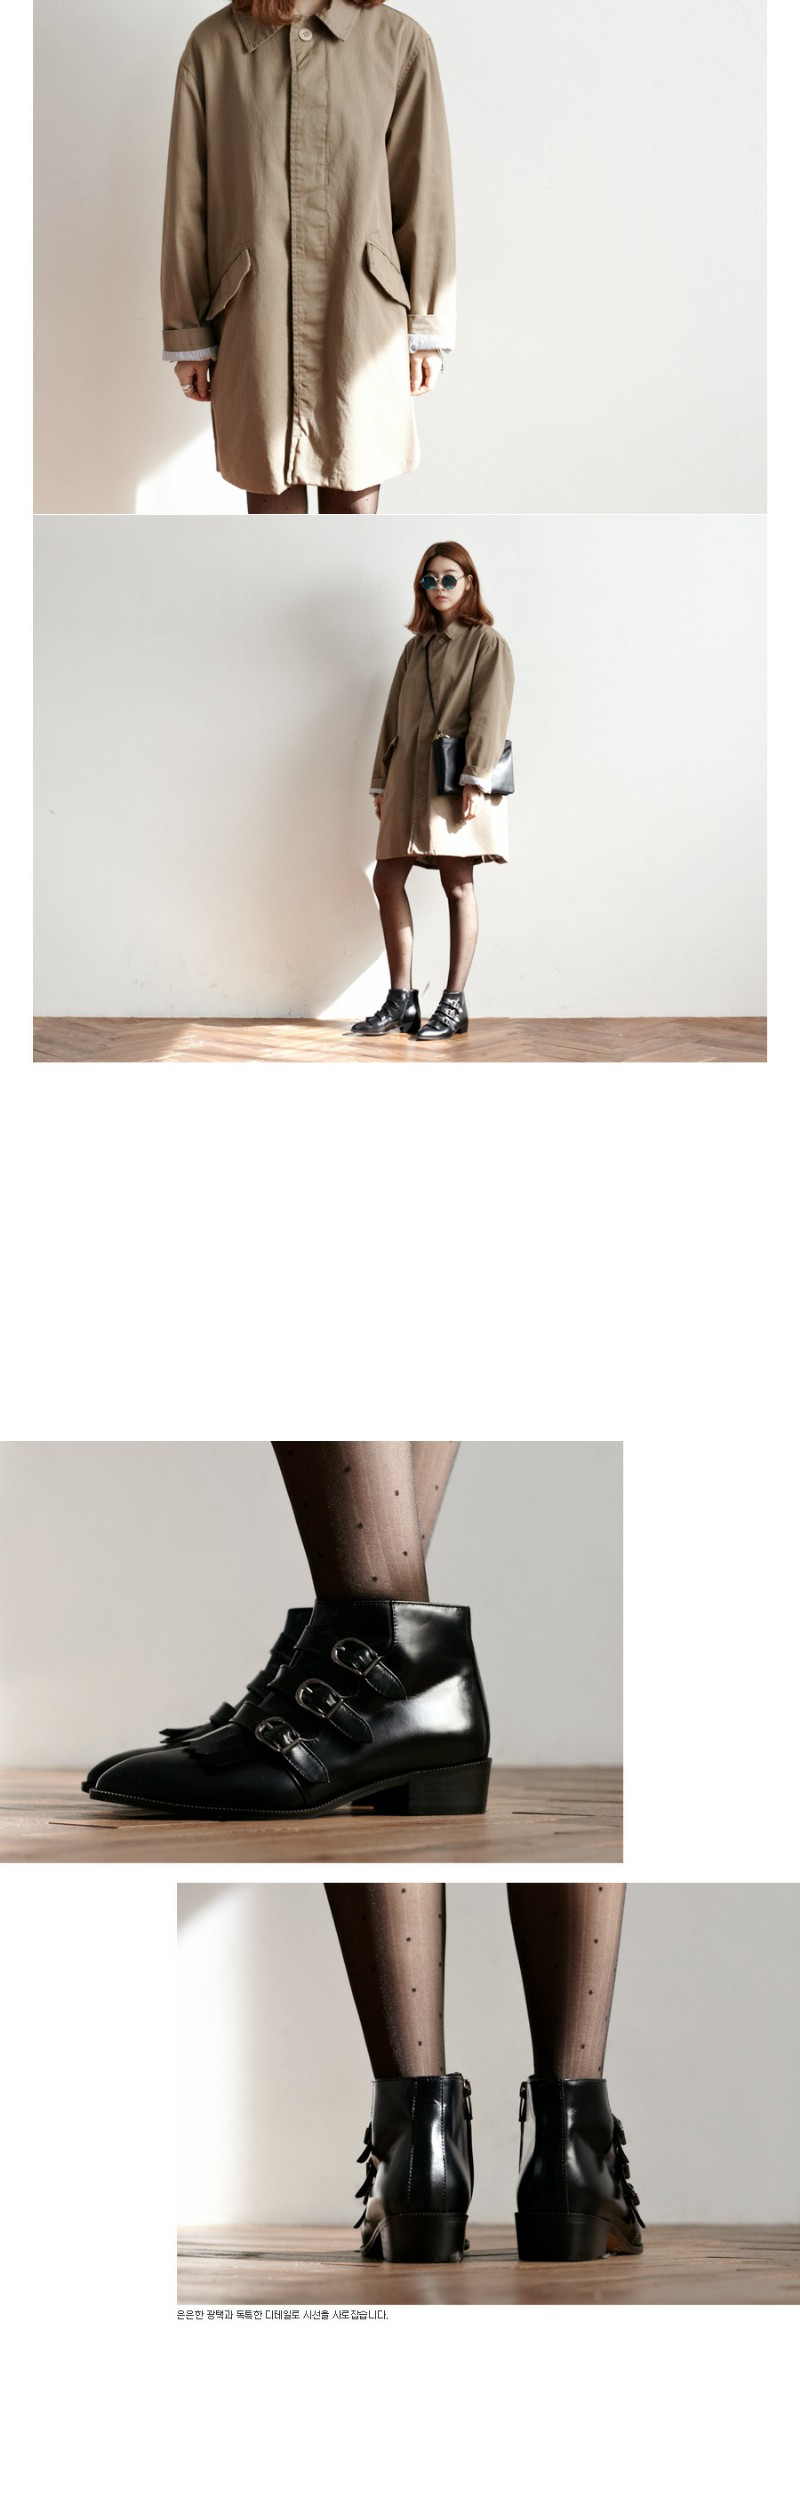 Buckle handmade ankle boots